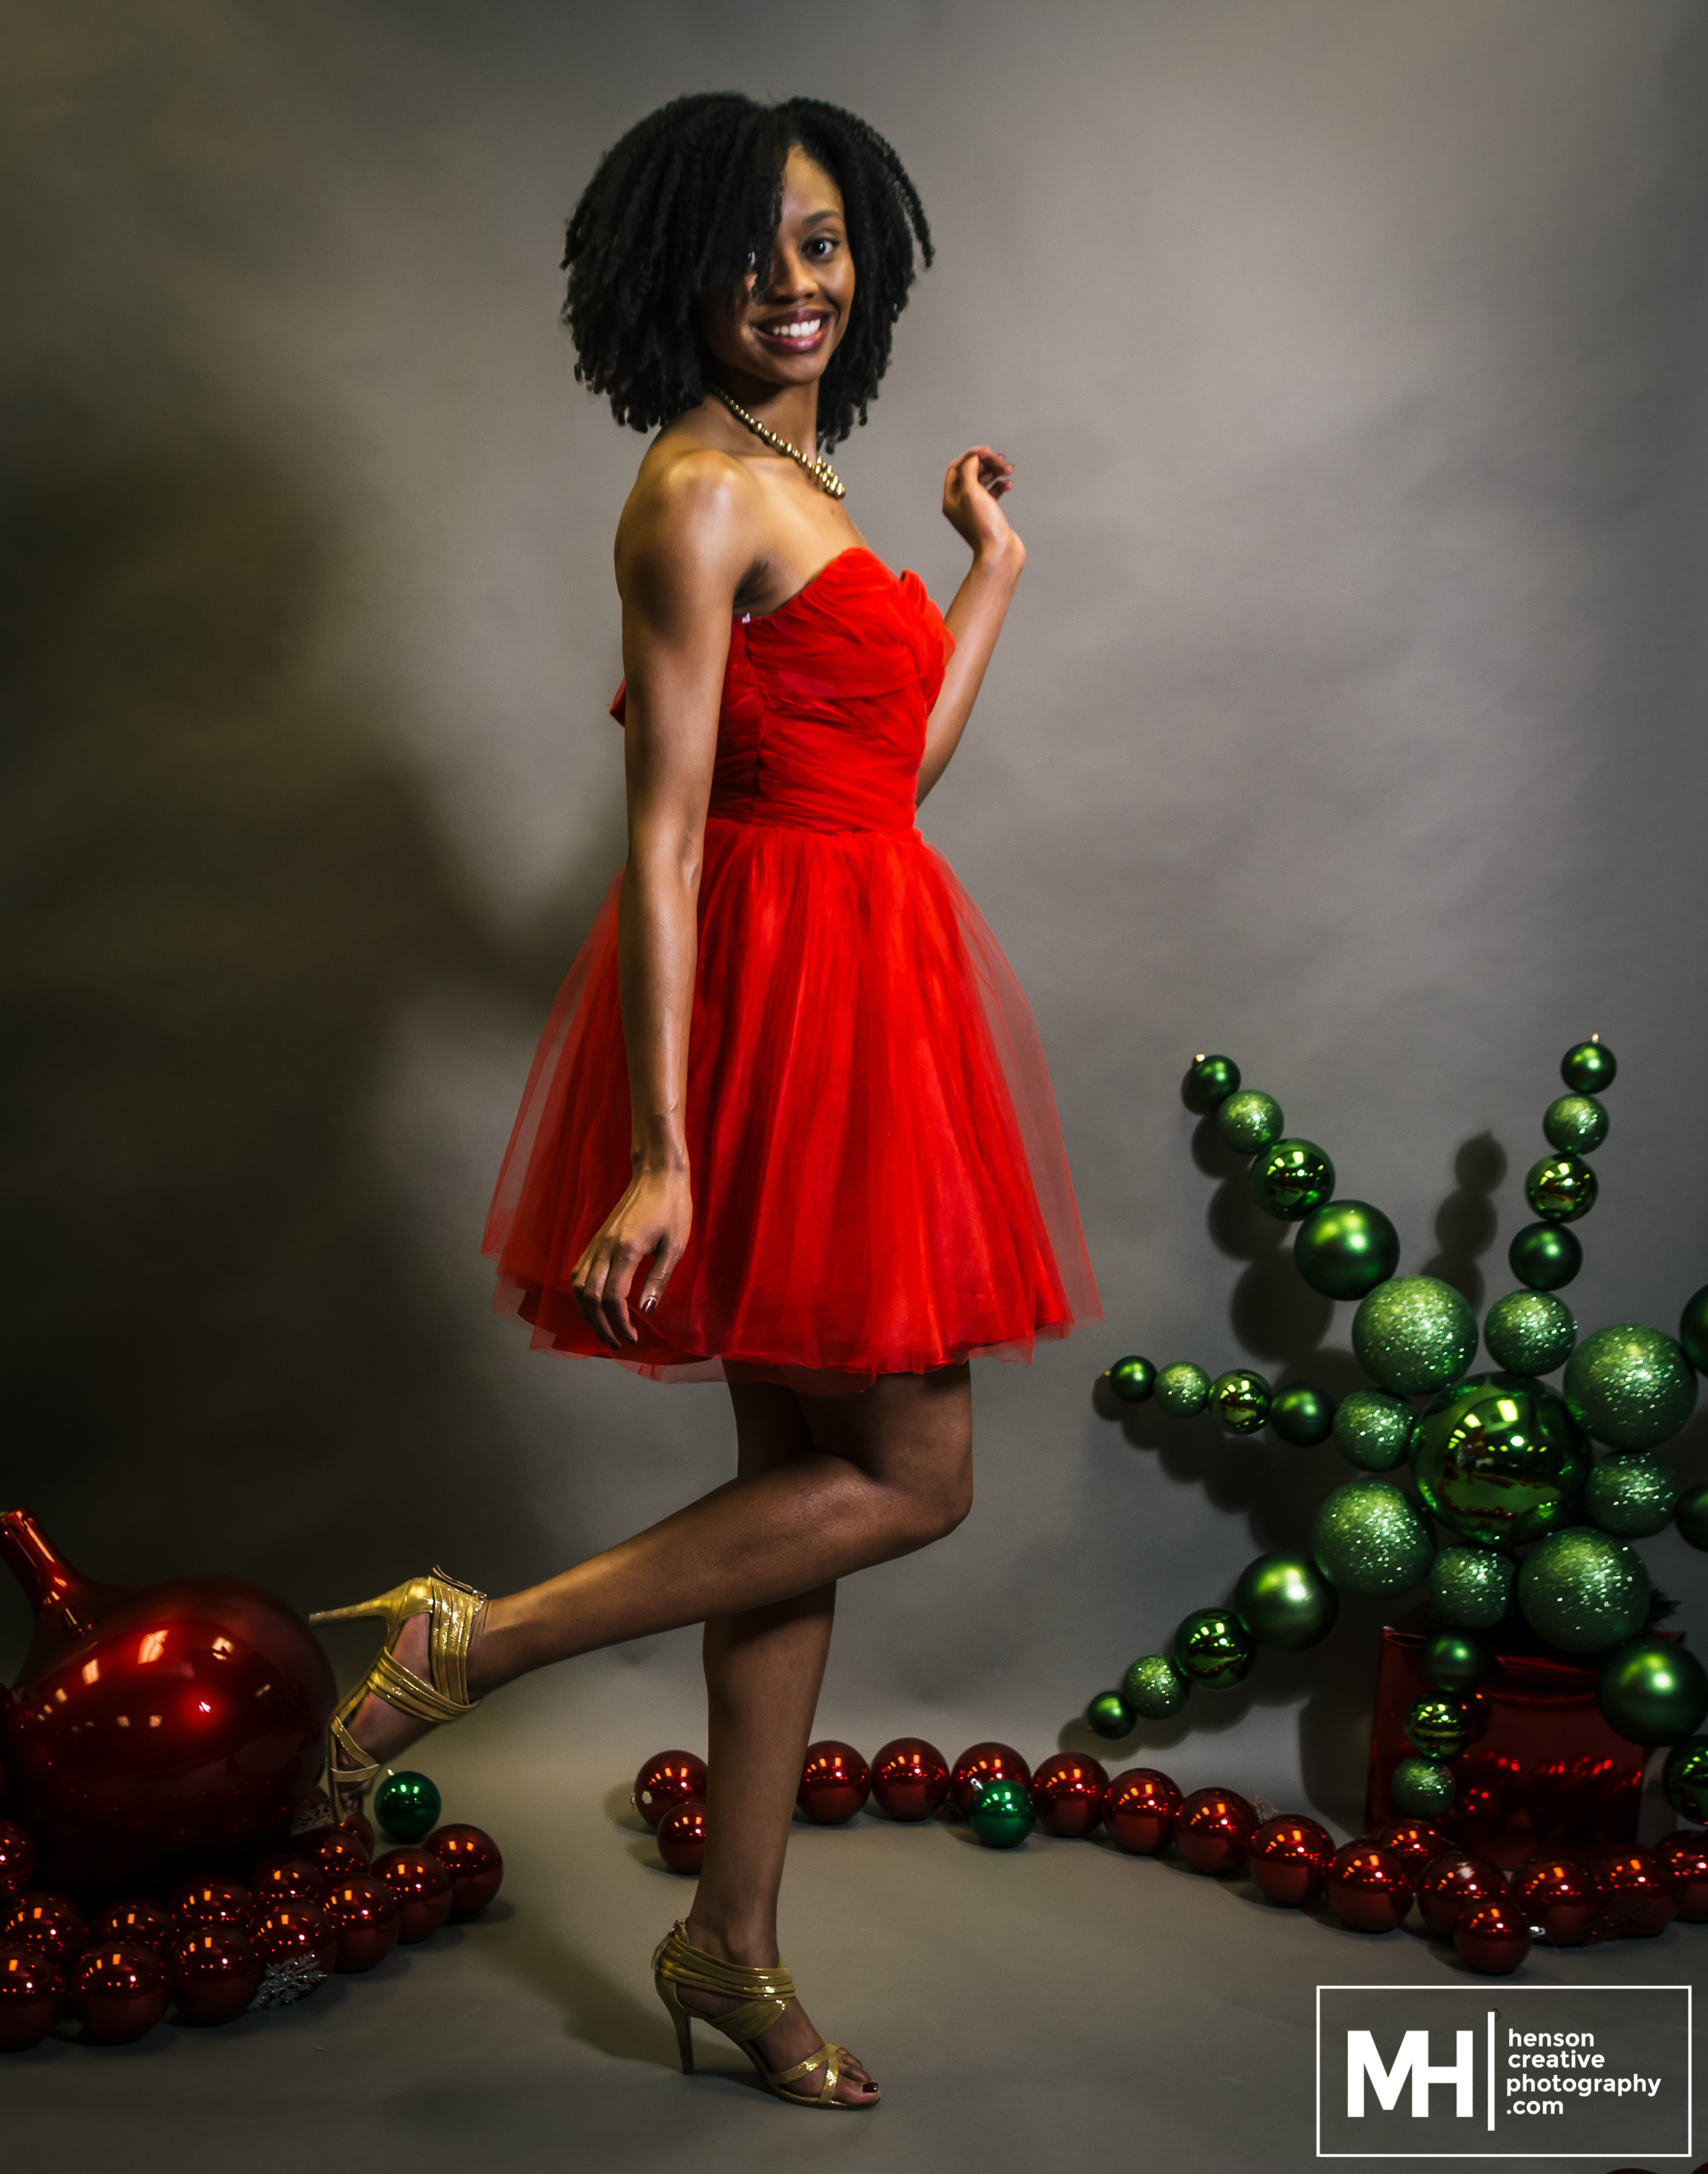 Refresh - ModeloftheMonth - December - St. Louis Fashion Photographer - Henson Creative(AfterRetouch)-1.jpg